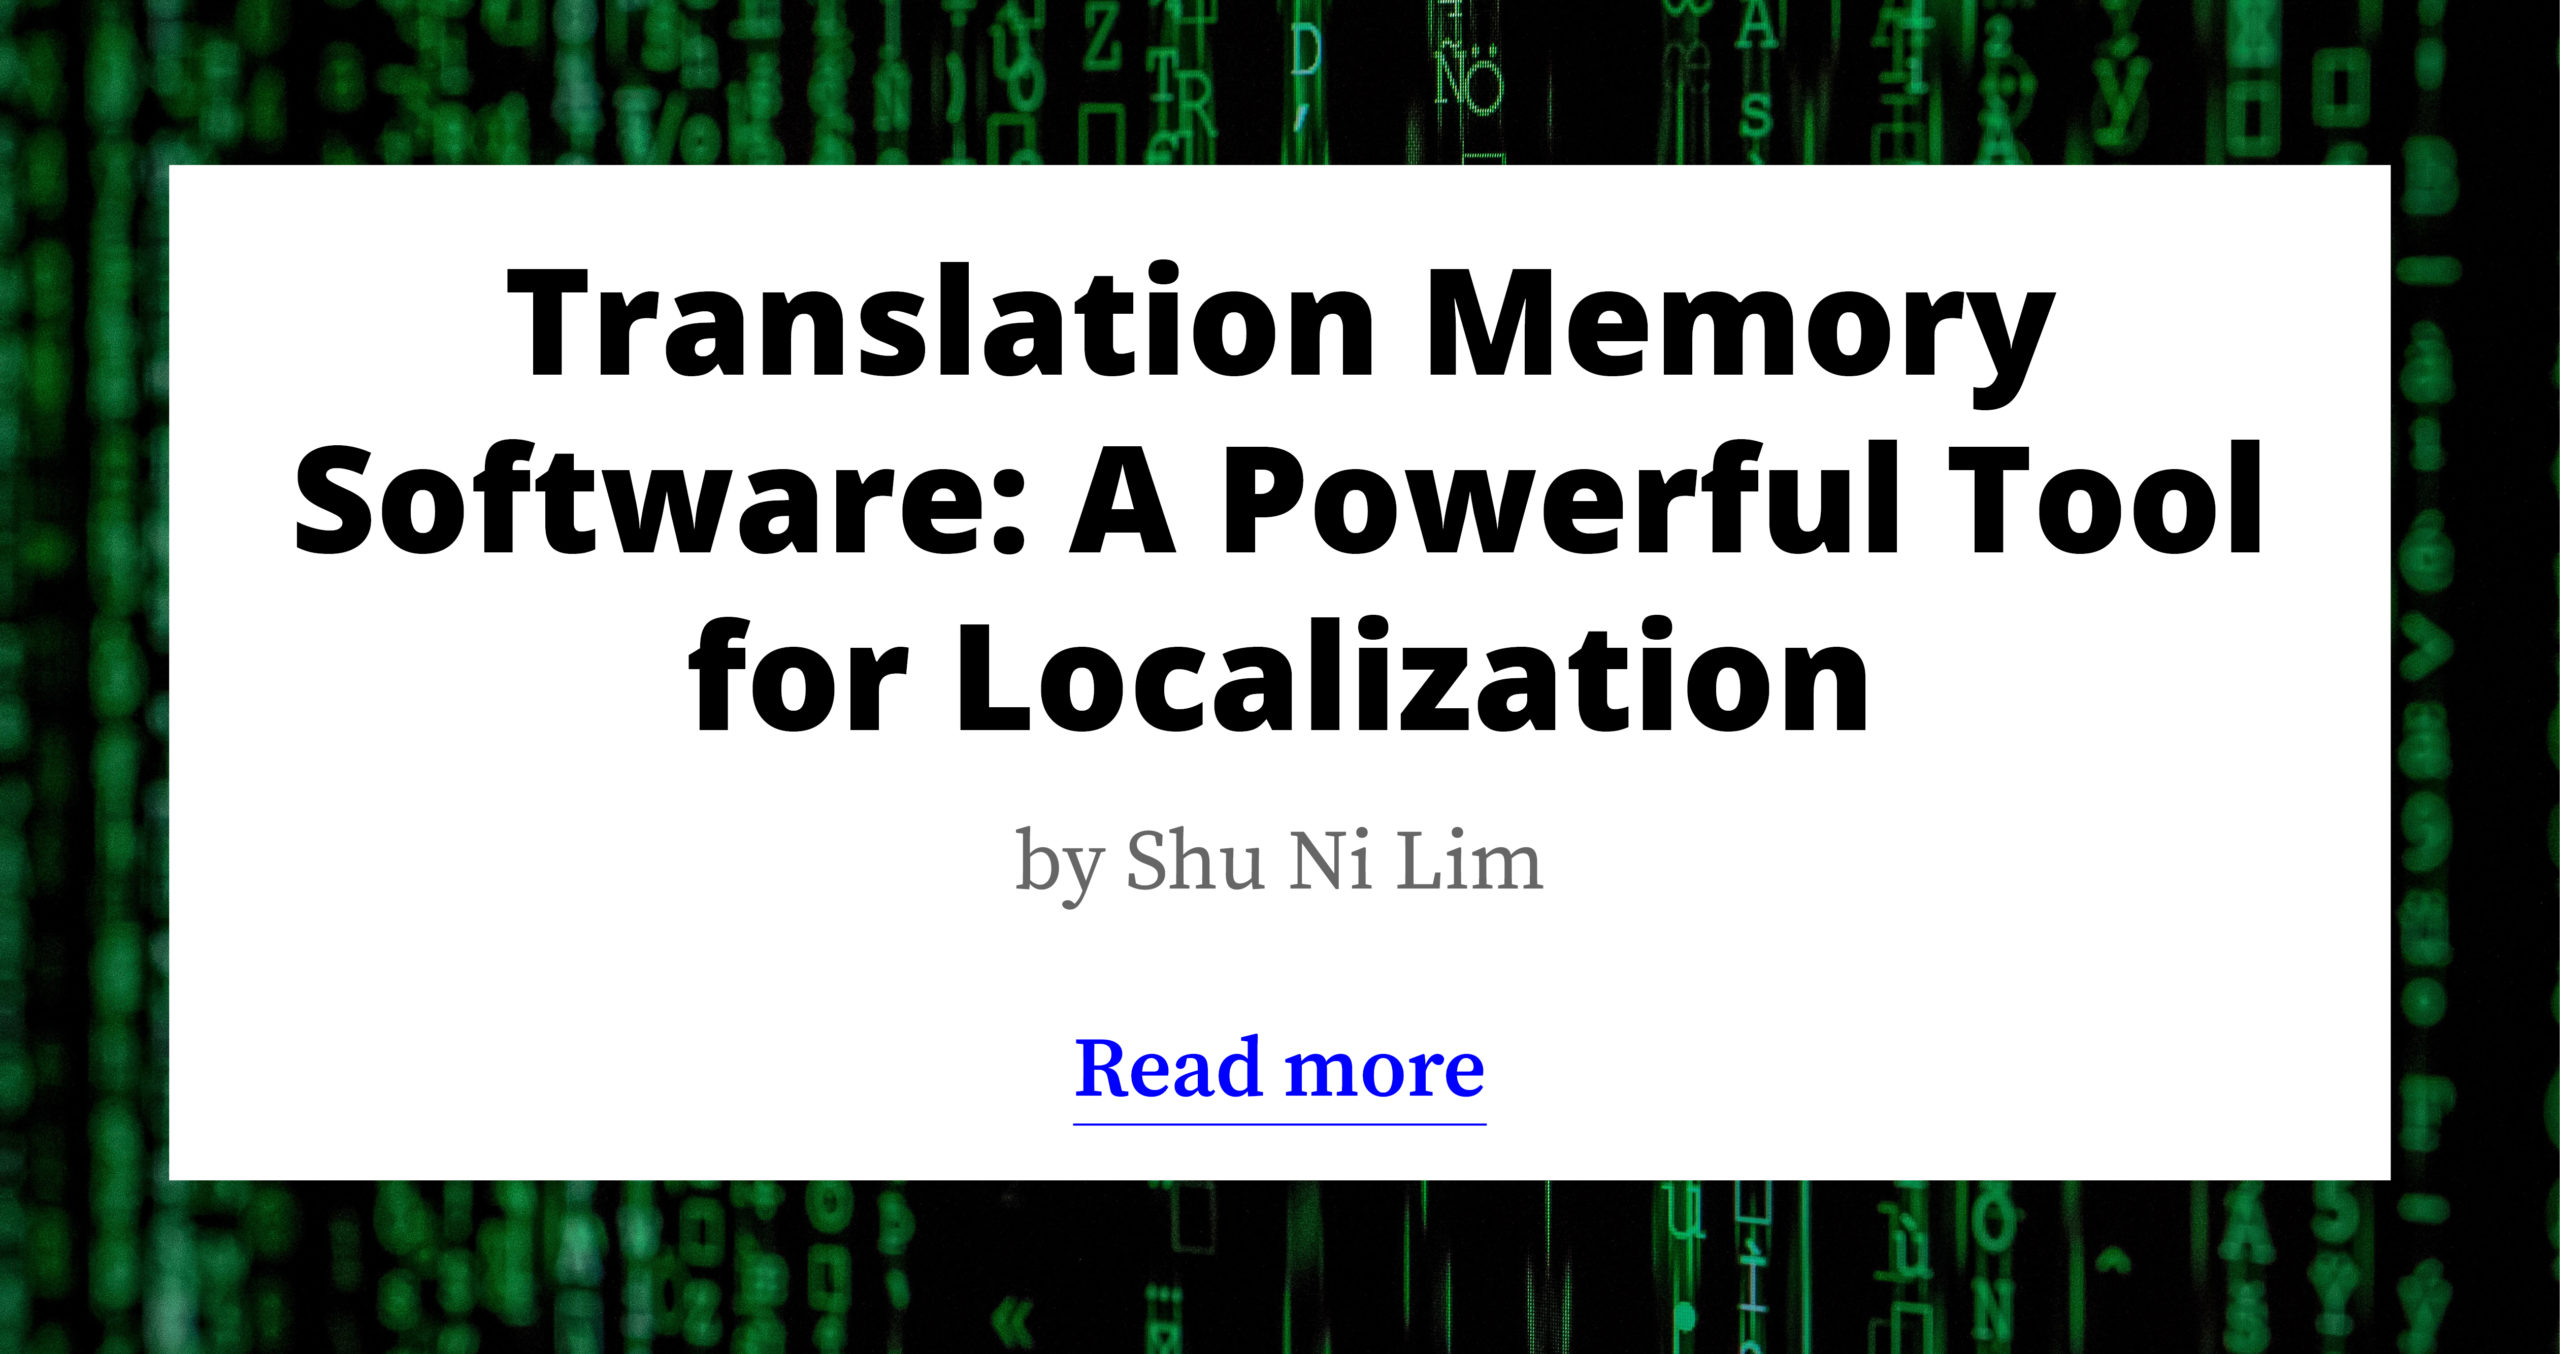 Translation Memory Software: A Powerful Tool for Localization